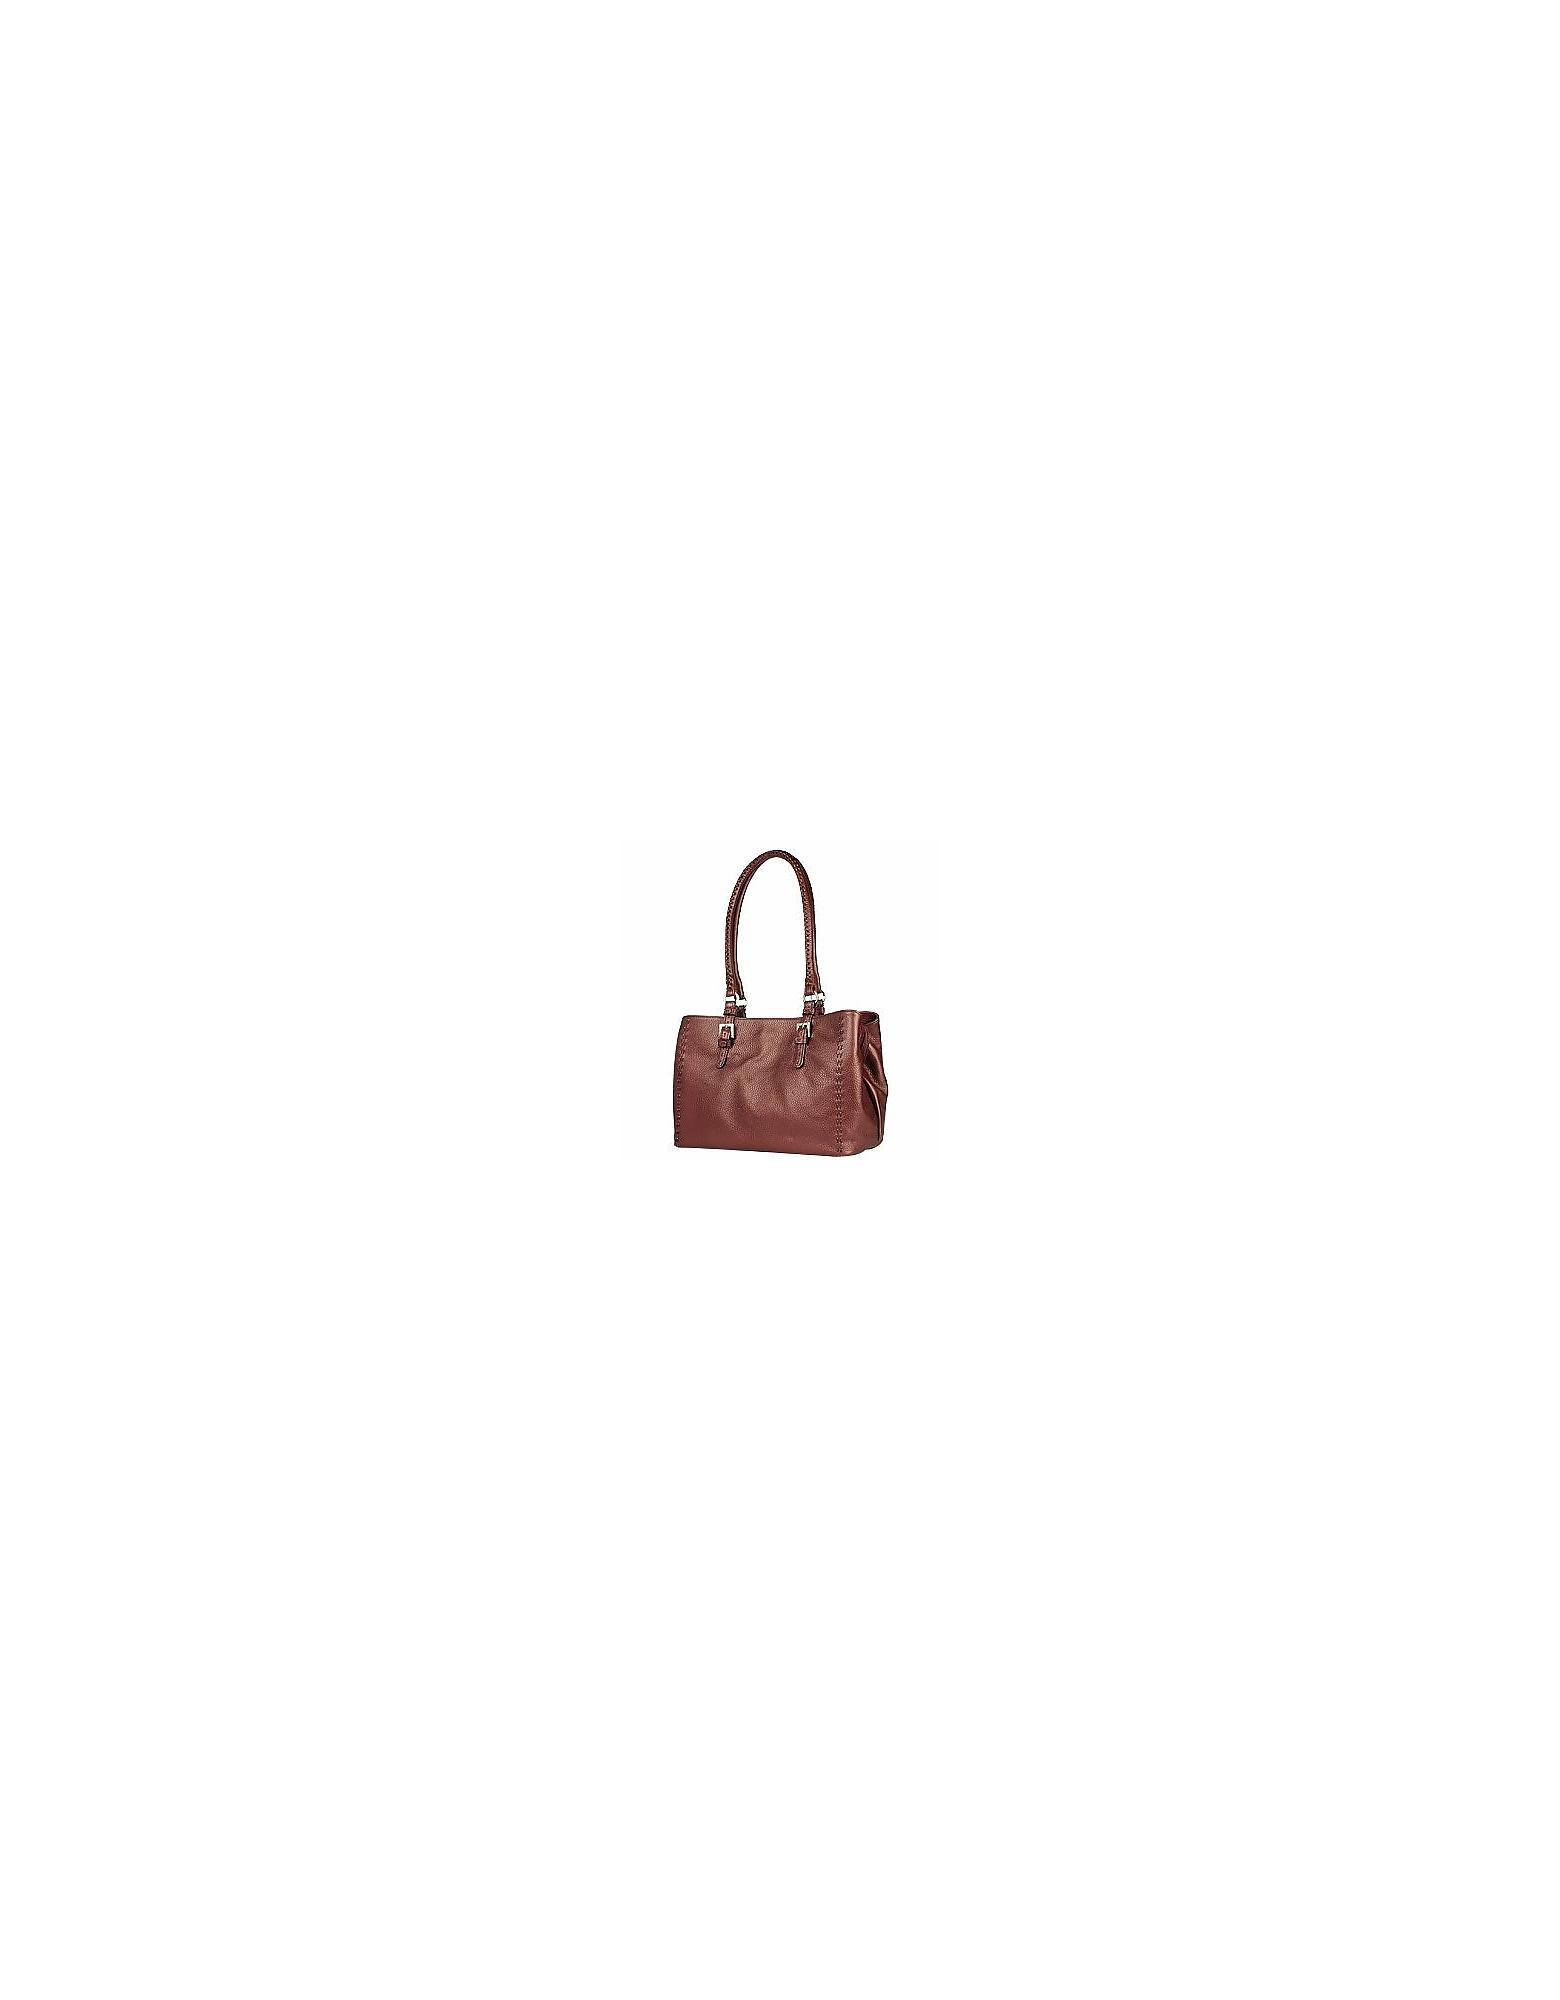 Fontanelli Handbags, Metallic Burgundy Stitched Soft Leather Satchel Bag